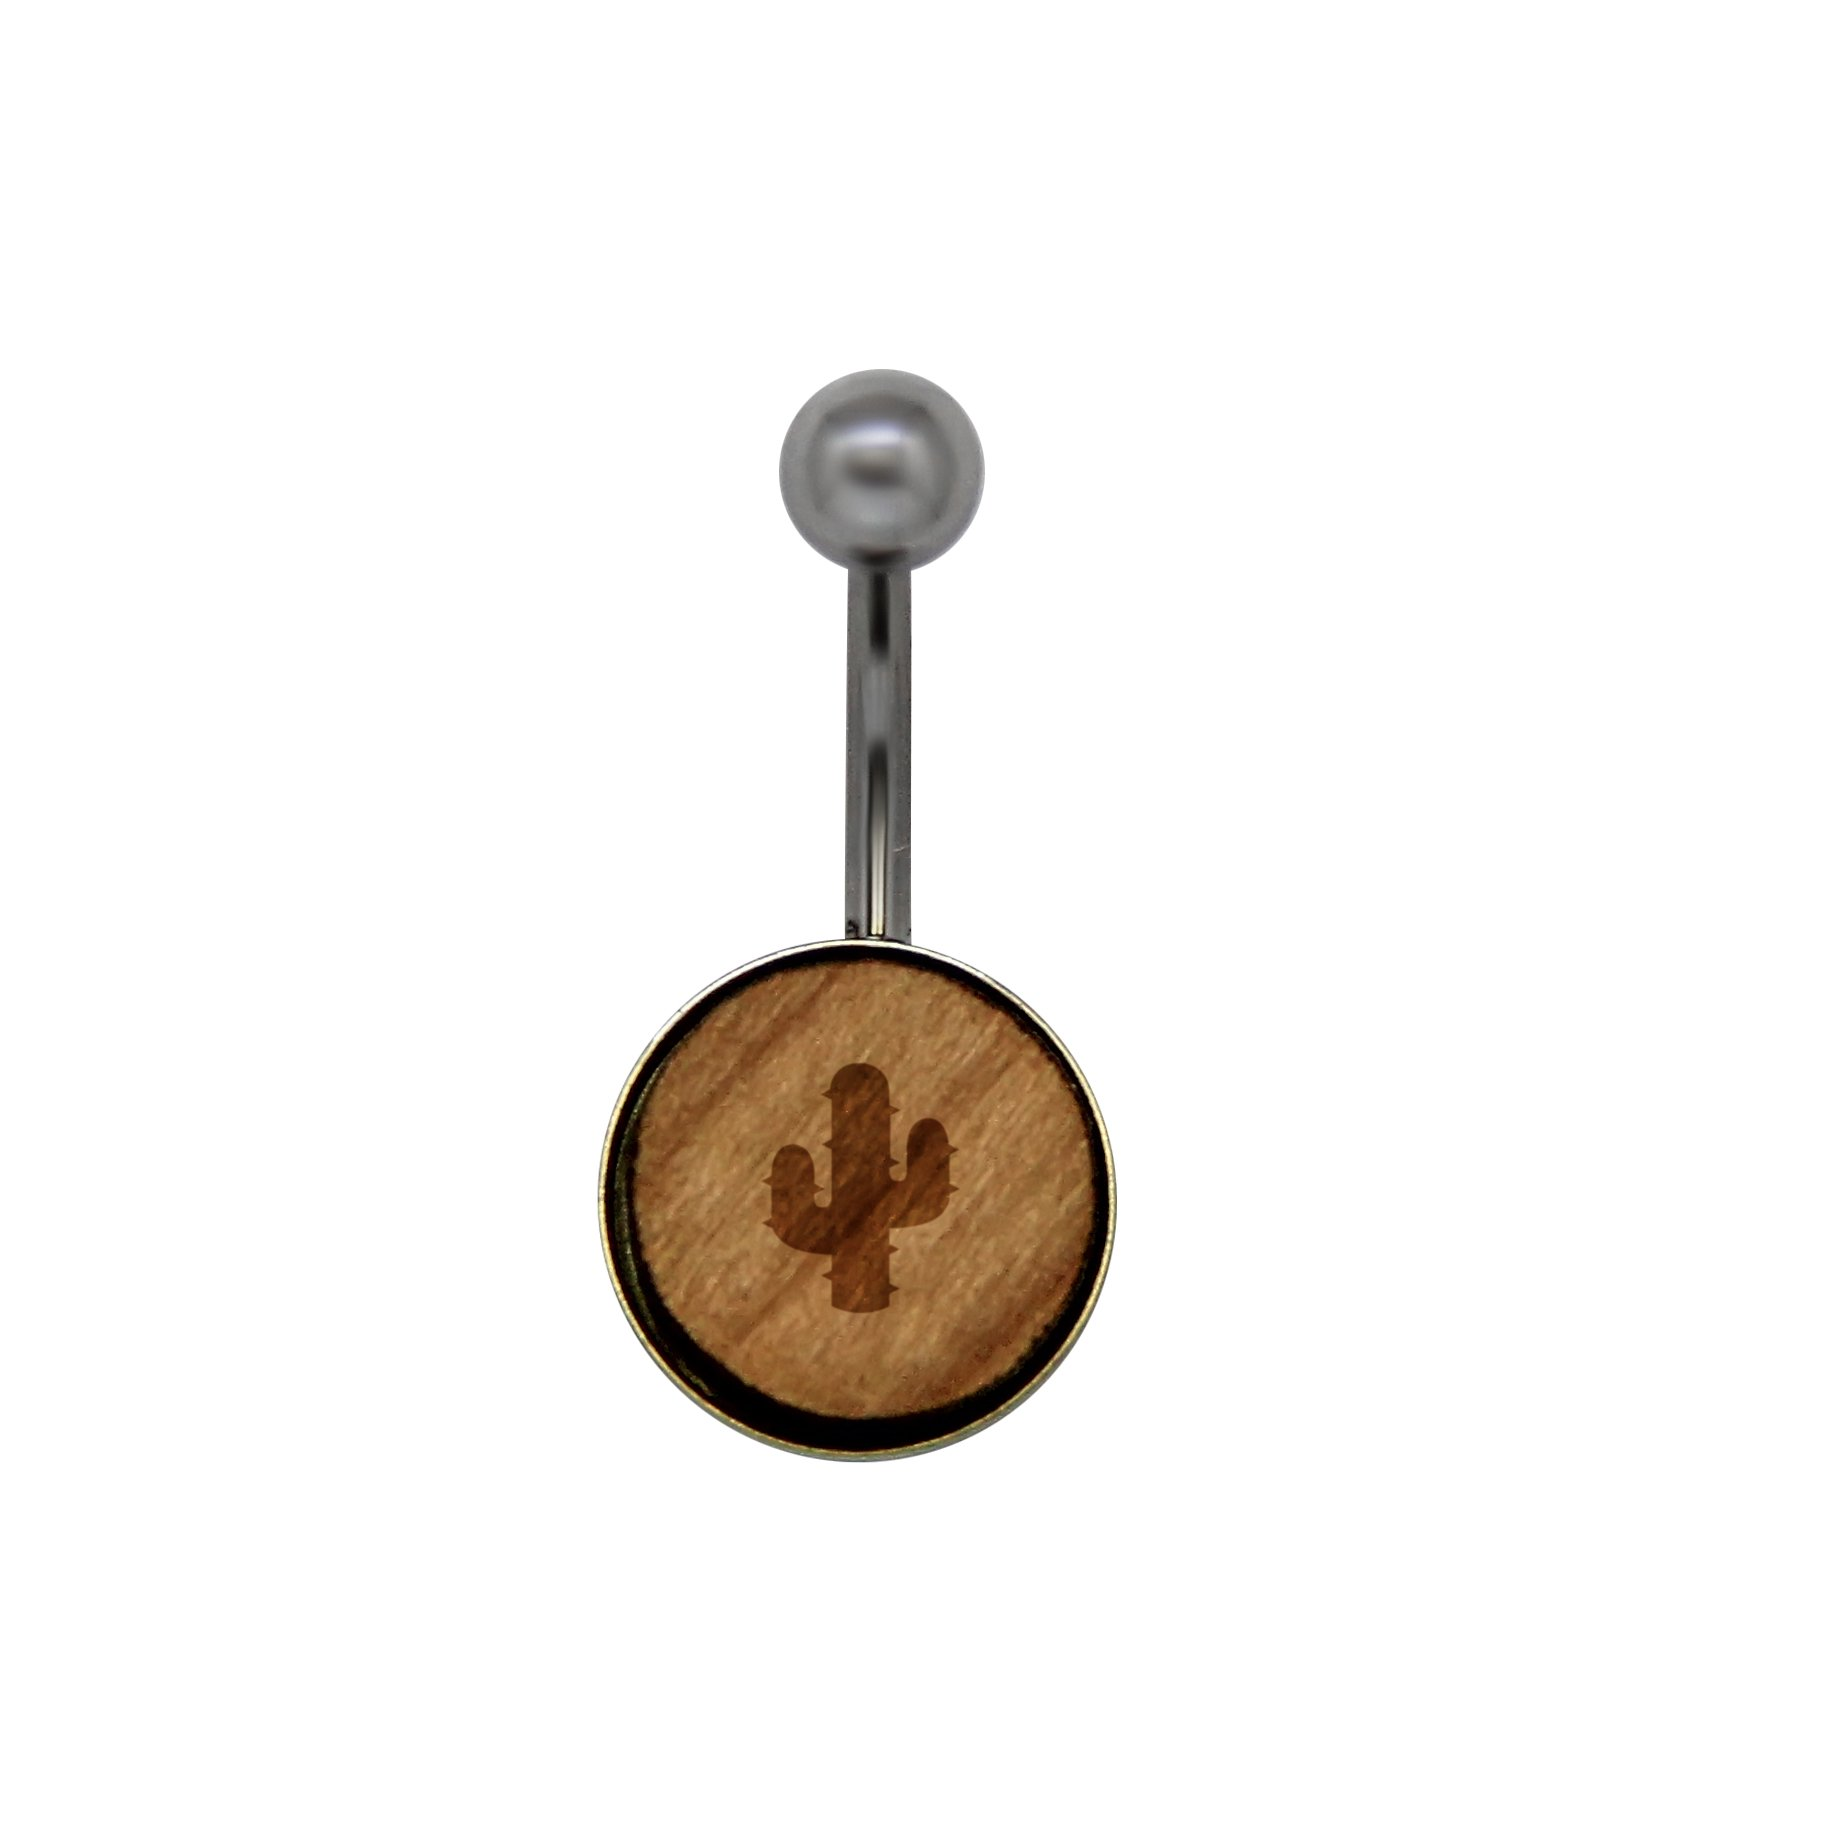 Prickly Cactus Surgical Stainless Steel Belly Button Rings - Size 14 Gauge Wooden Navel Ring - Rustic Wood Navel Ring With Laser Engraved Design